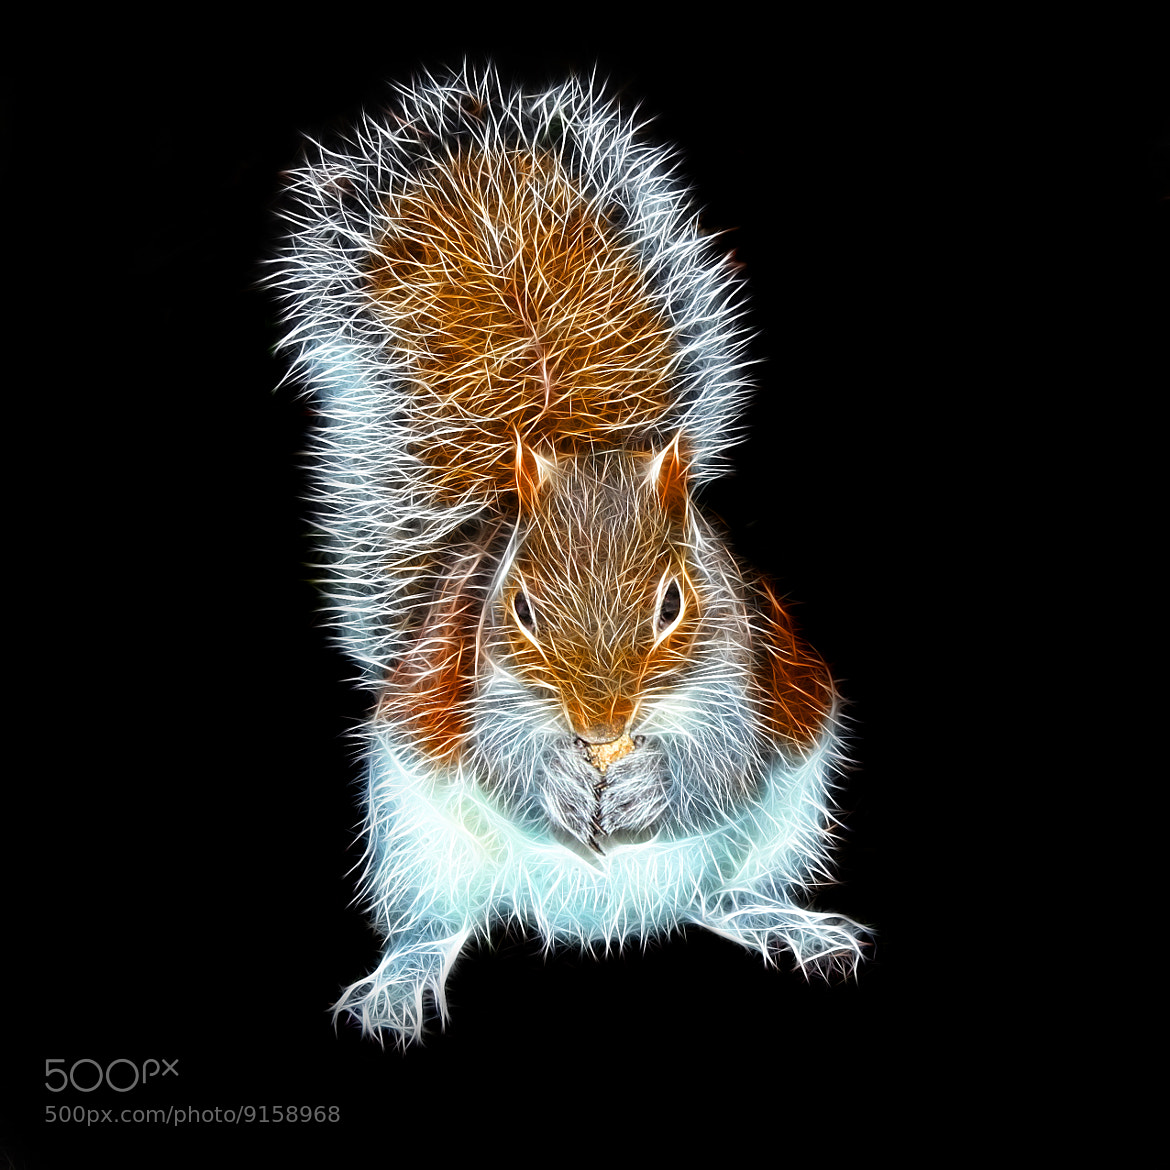 Photograph Squirrel by Vendenis   on 500px